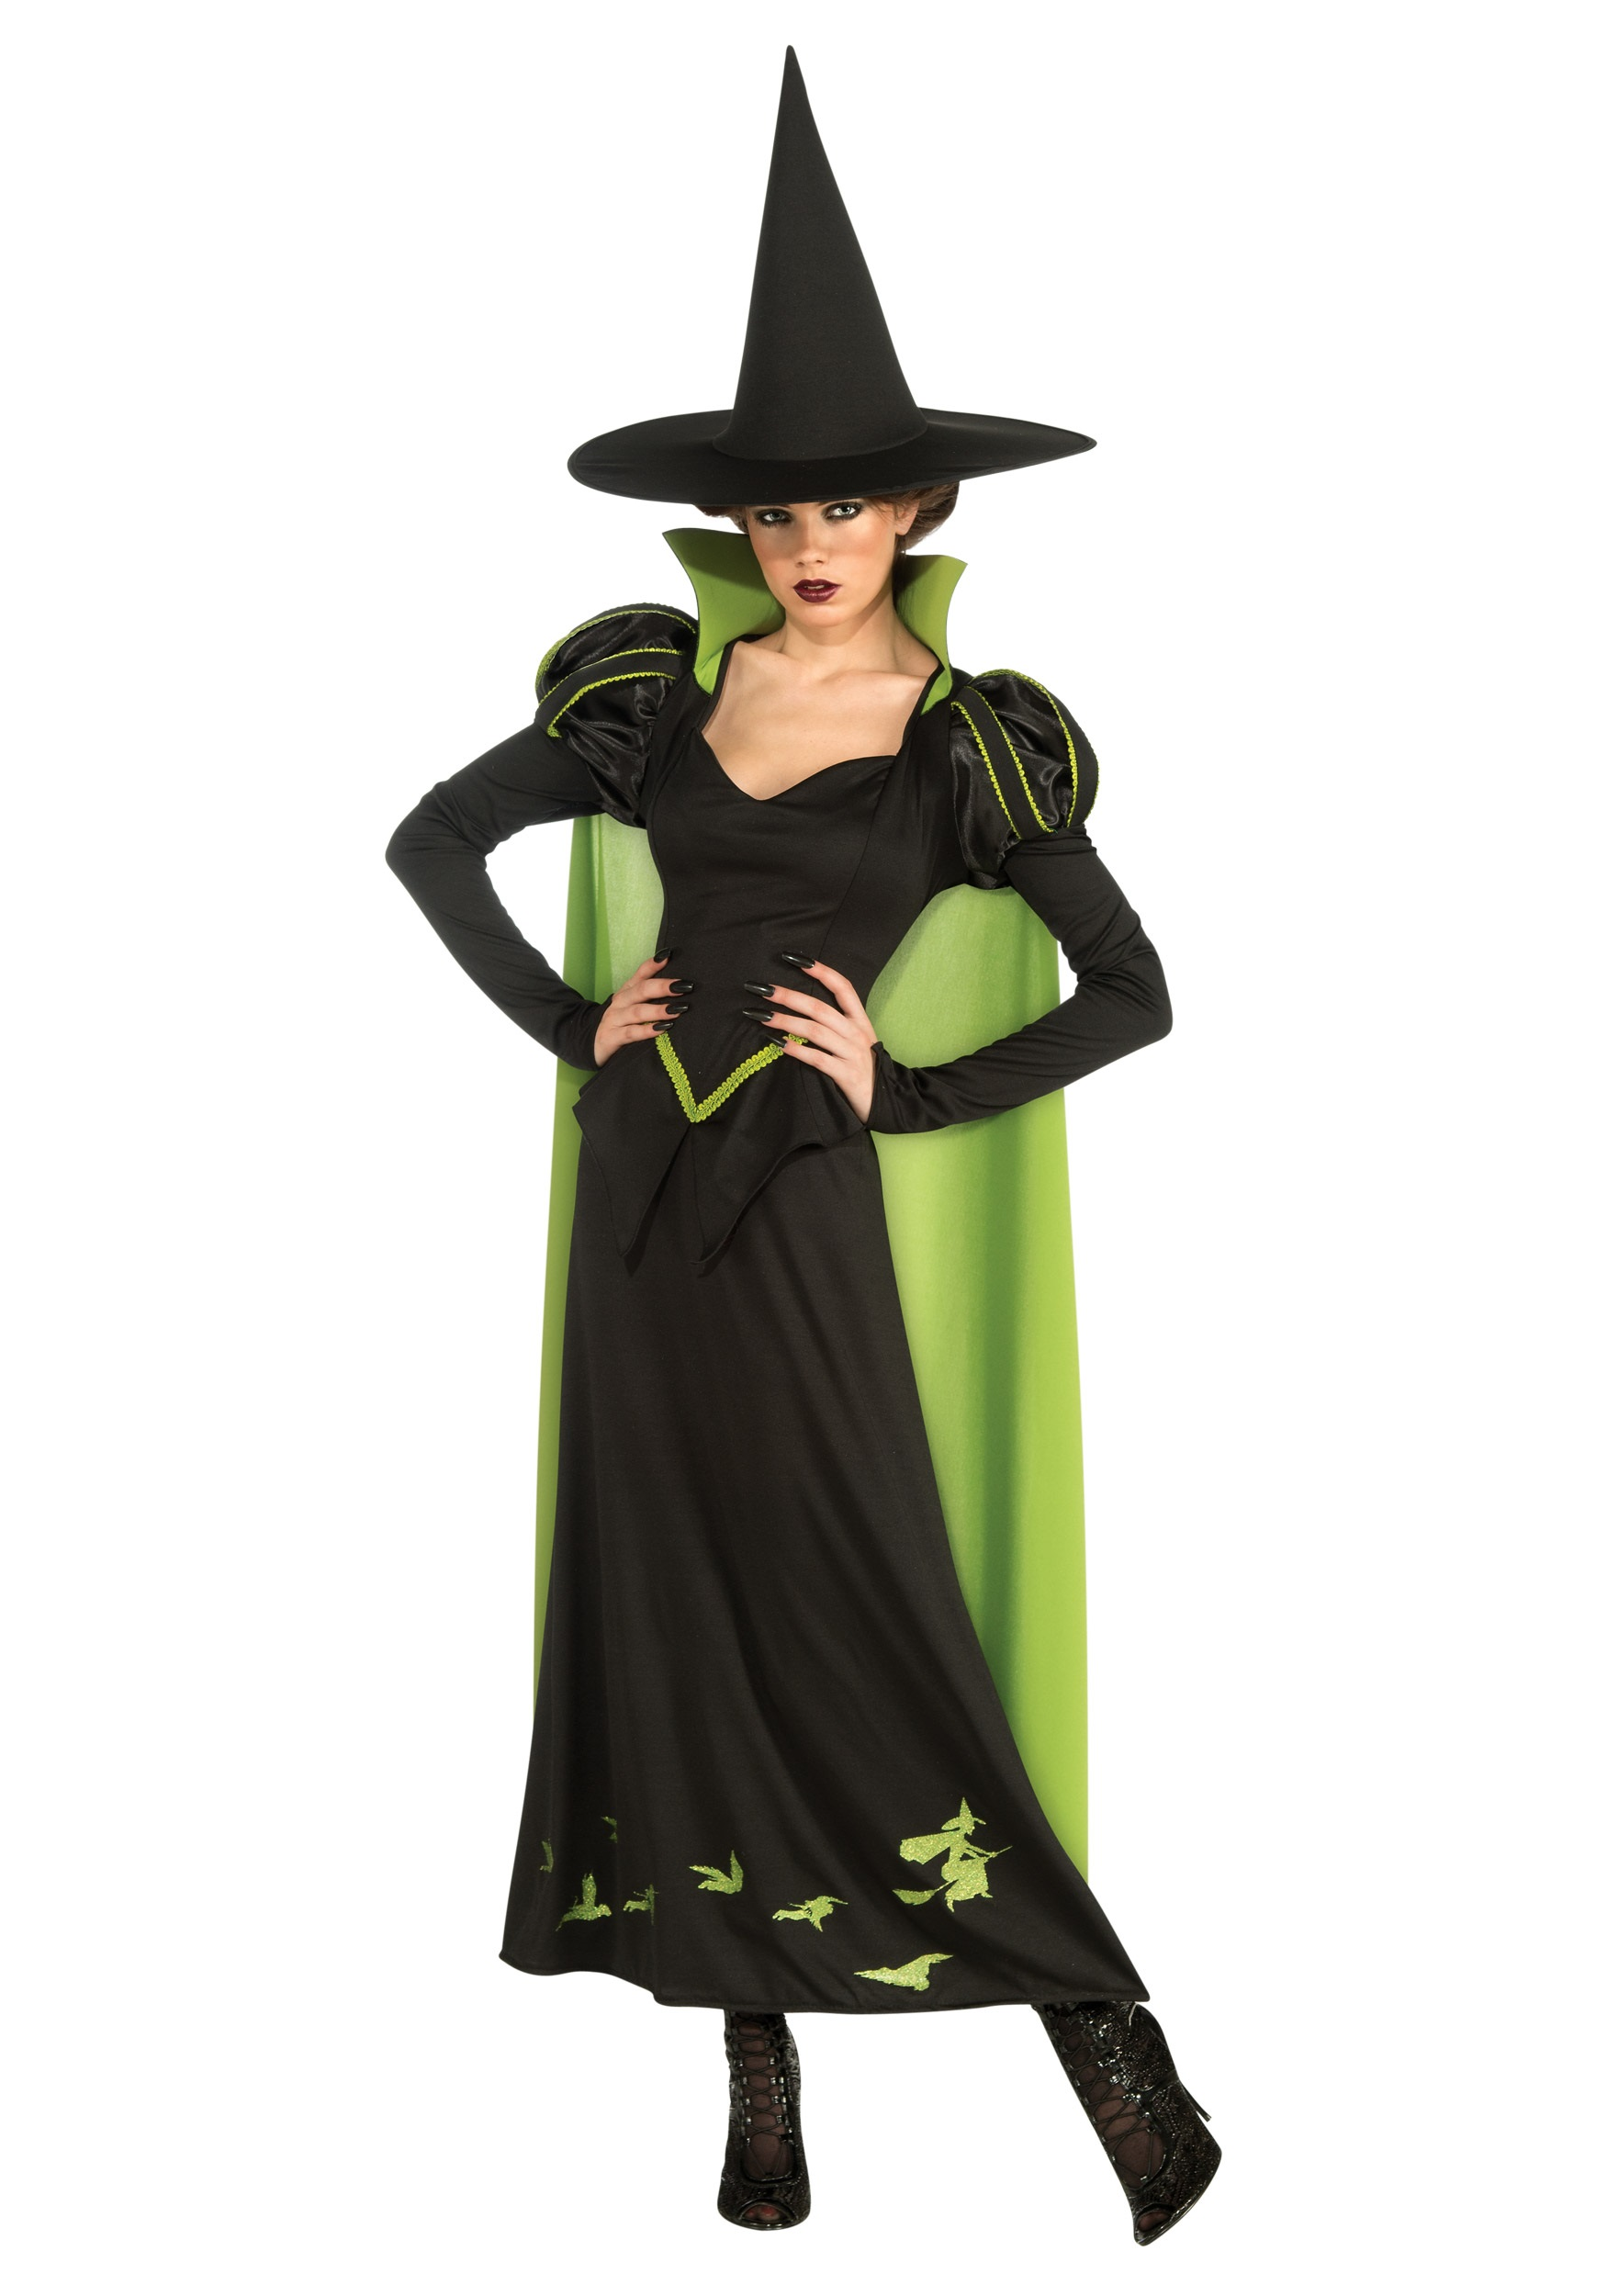 Wicked Witch of the West Costumes - HalloweenCostumes.com